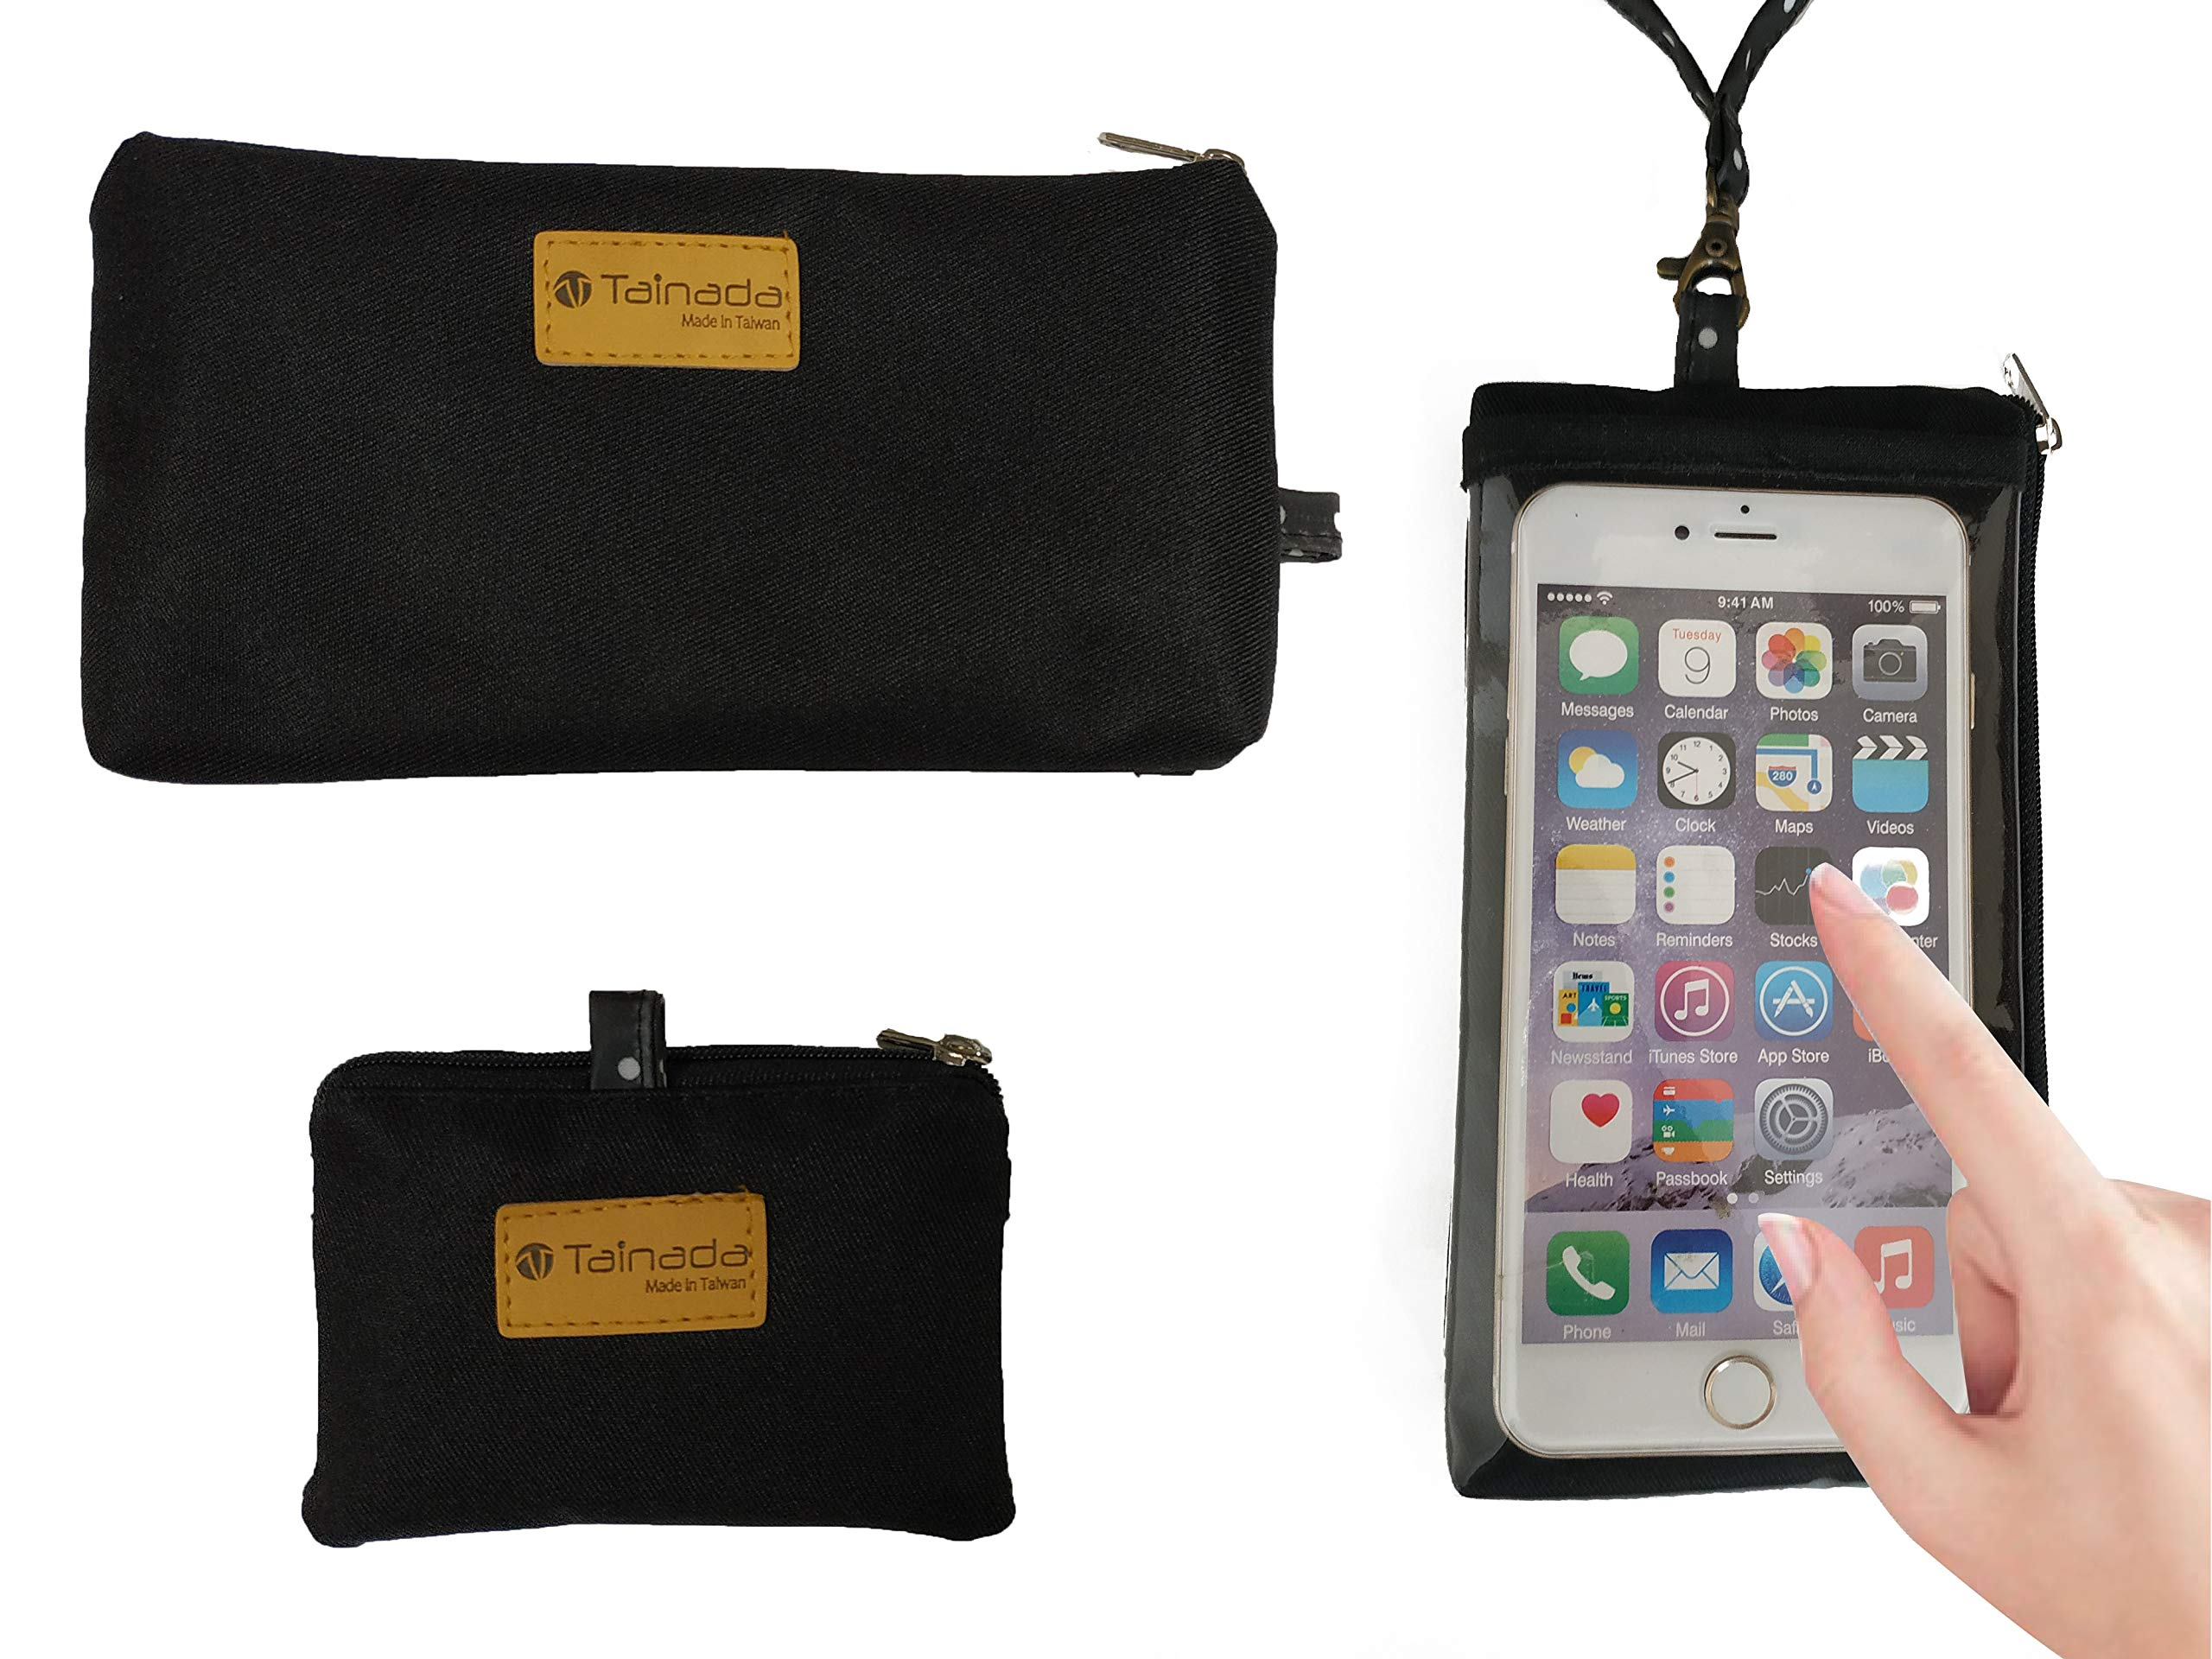 Tainada Smartphone Purse Pouch Bag with Clear View Window Touch Screen & Neck Strap Lanyard for iPhone Xs Max, XR, Samsung Galaxy S9 + Bonus ID Window Card Holder Coin Purse (Black)